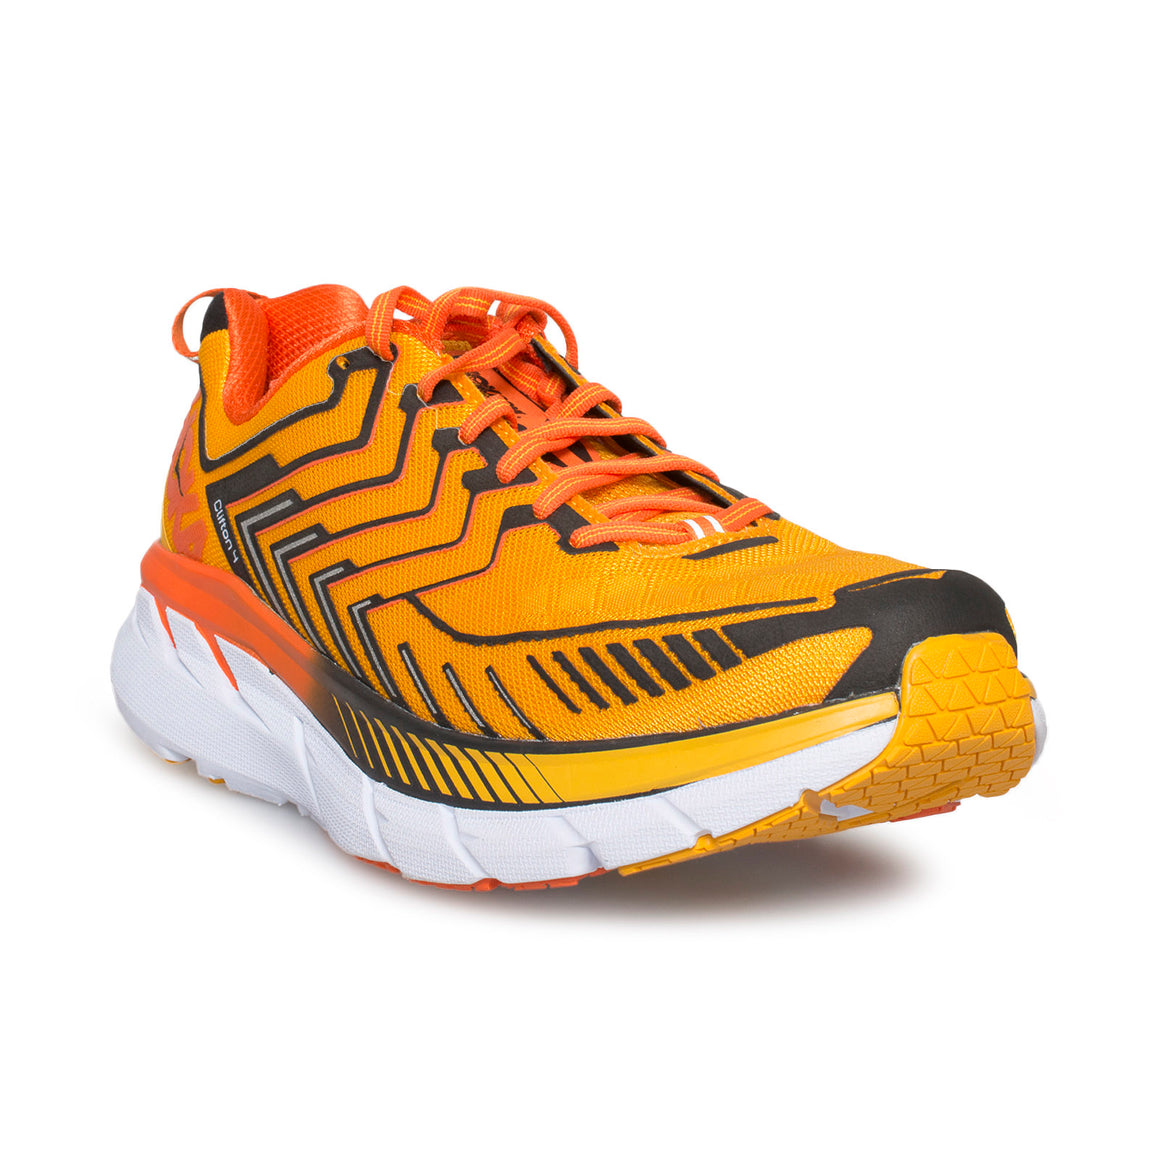 Hoka One One Clifton 4 Saffron / Red Orange Running Shoes - Men's